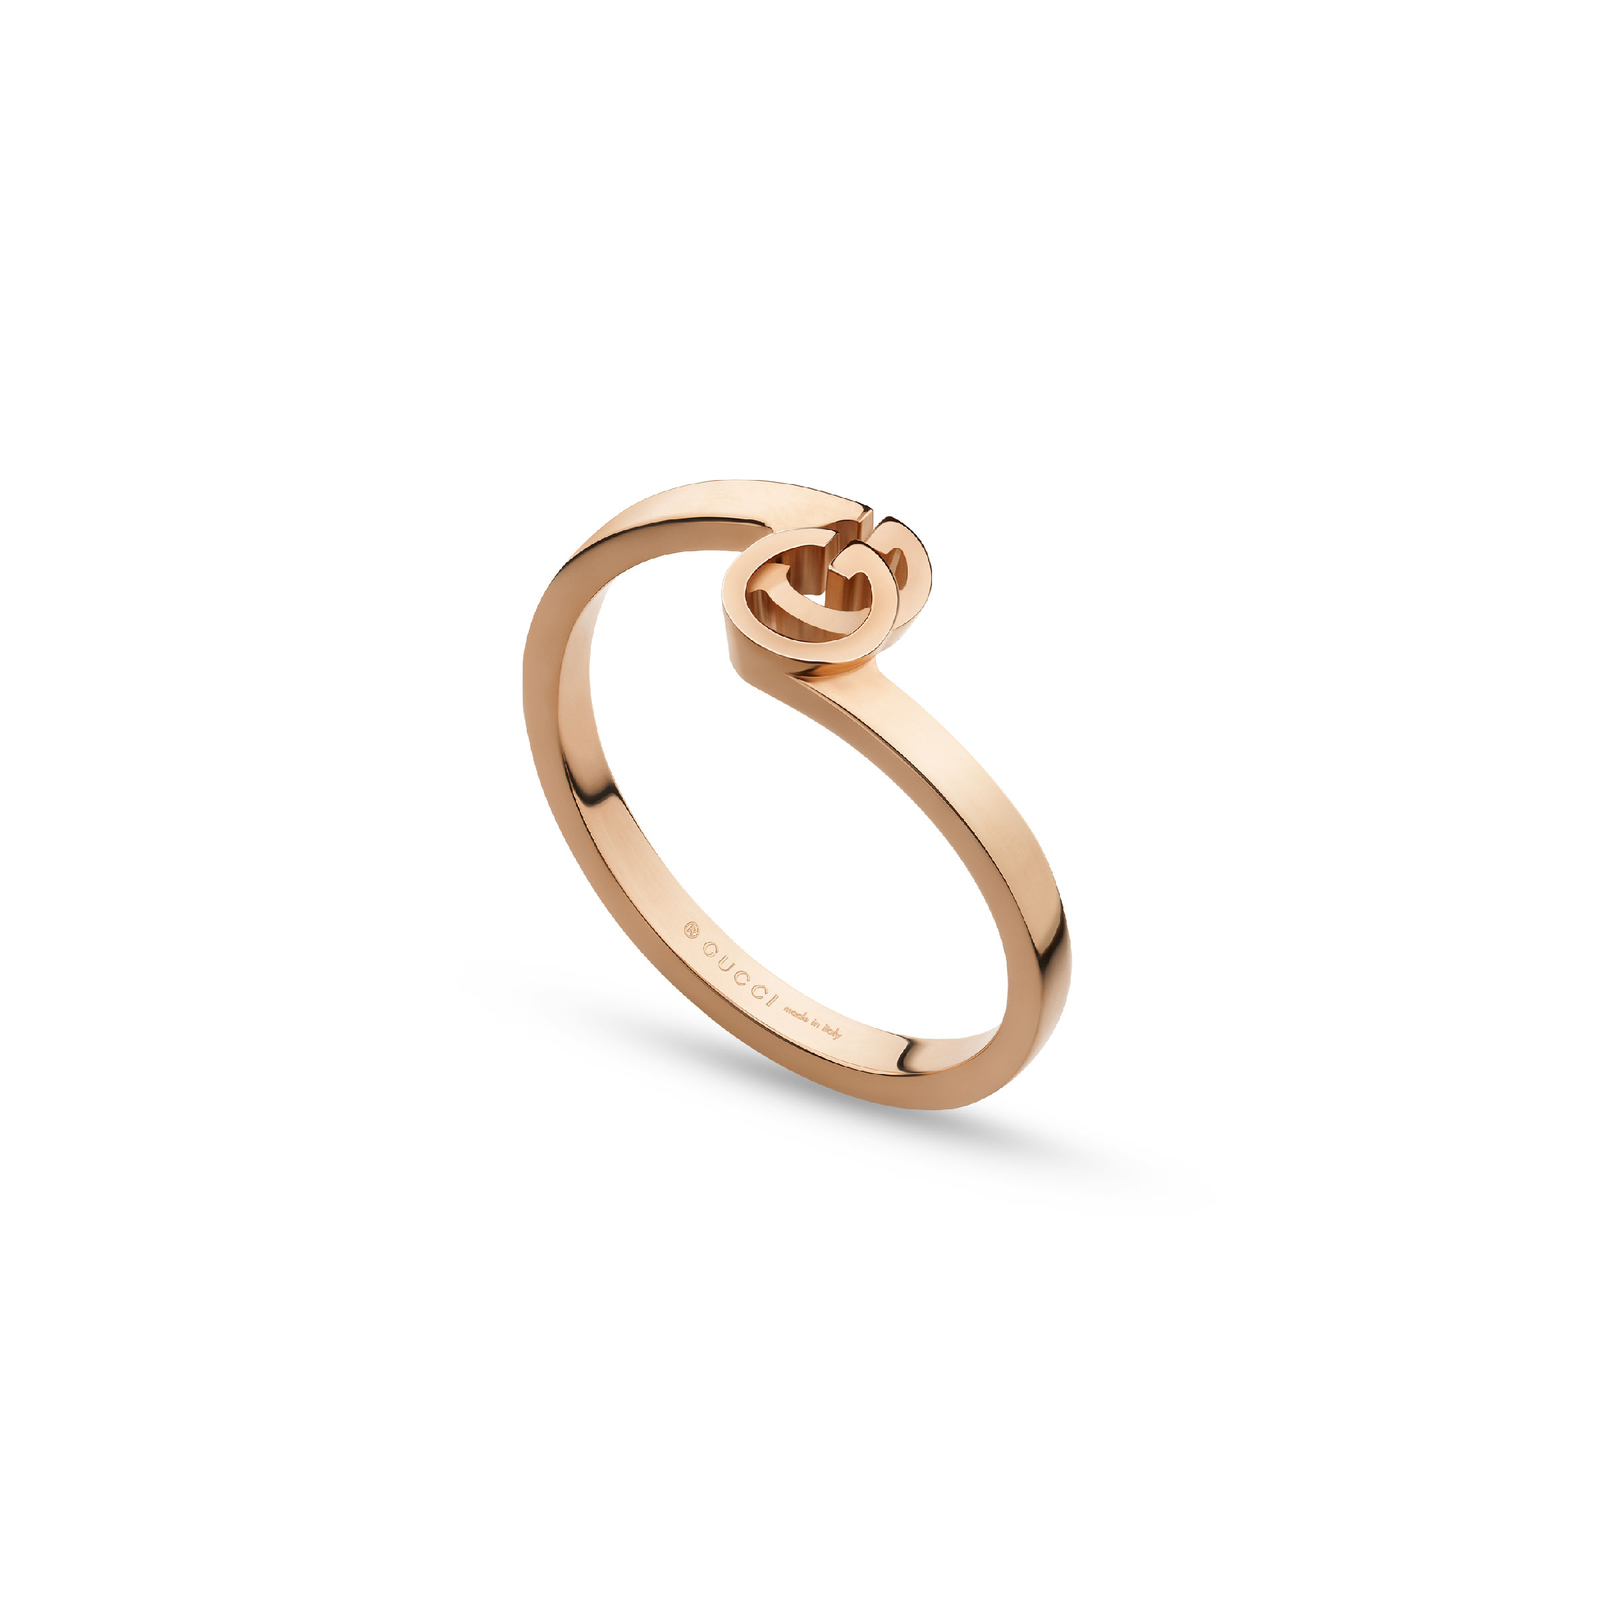 Gucci Running G Ring in 18ct Rose Gold - Ring Size M